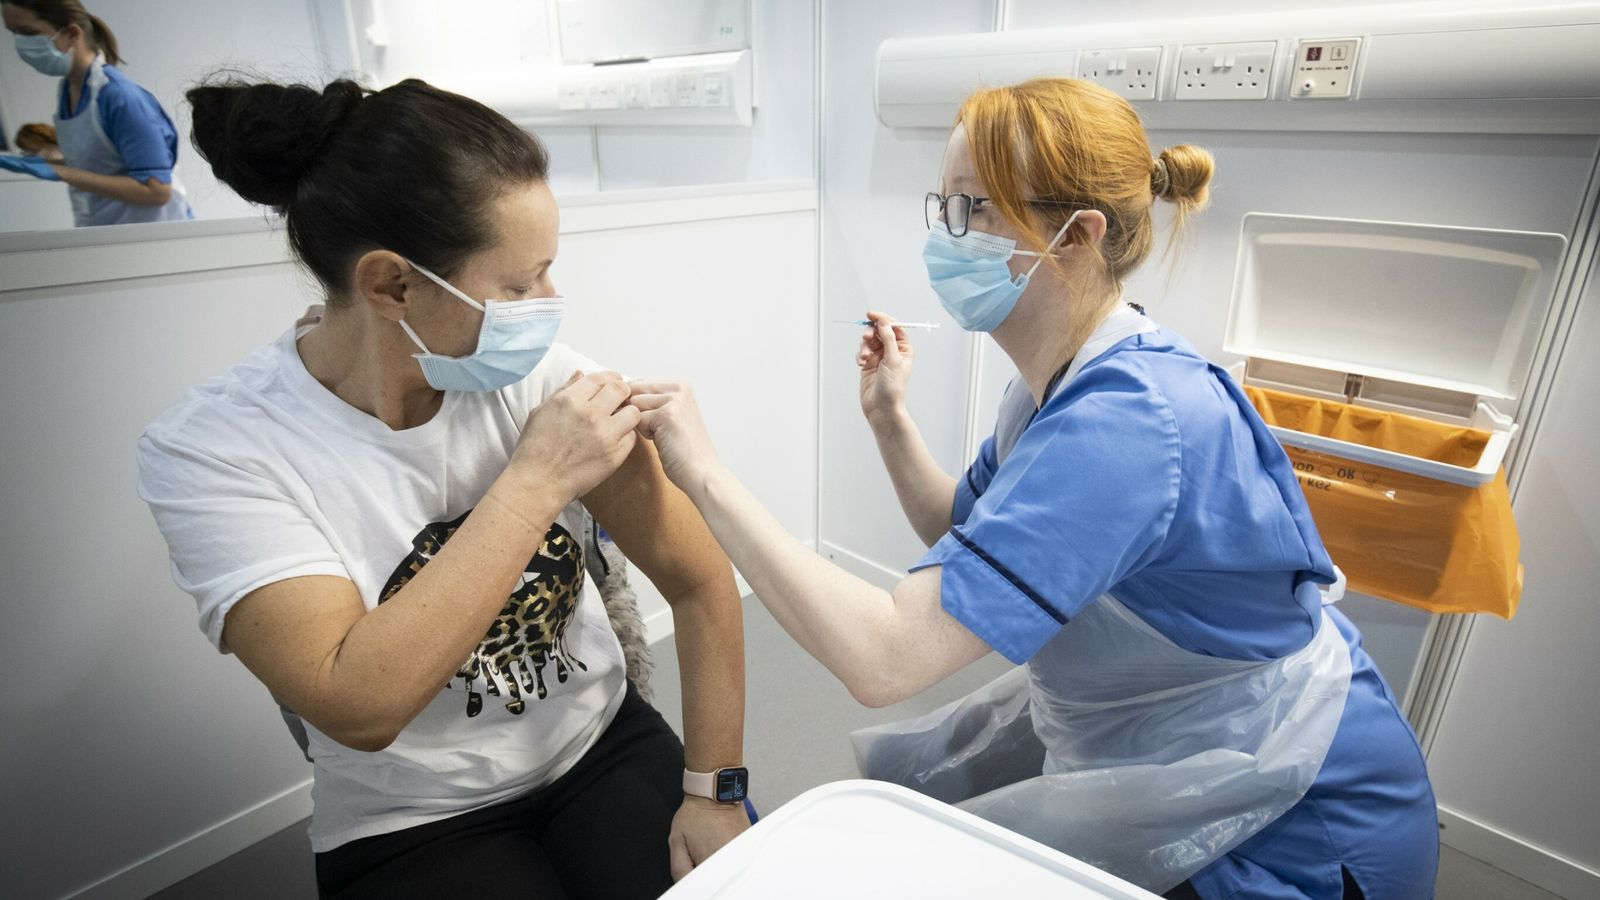 COVID-19: UK breaks daily jab record with more than 660,000 vaccine doses administered